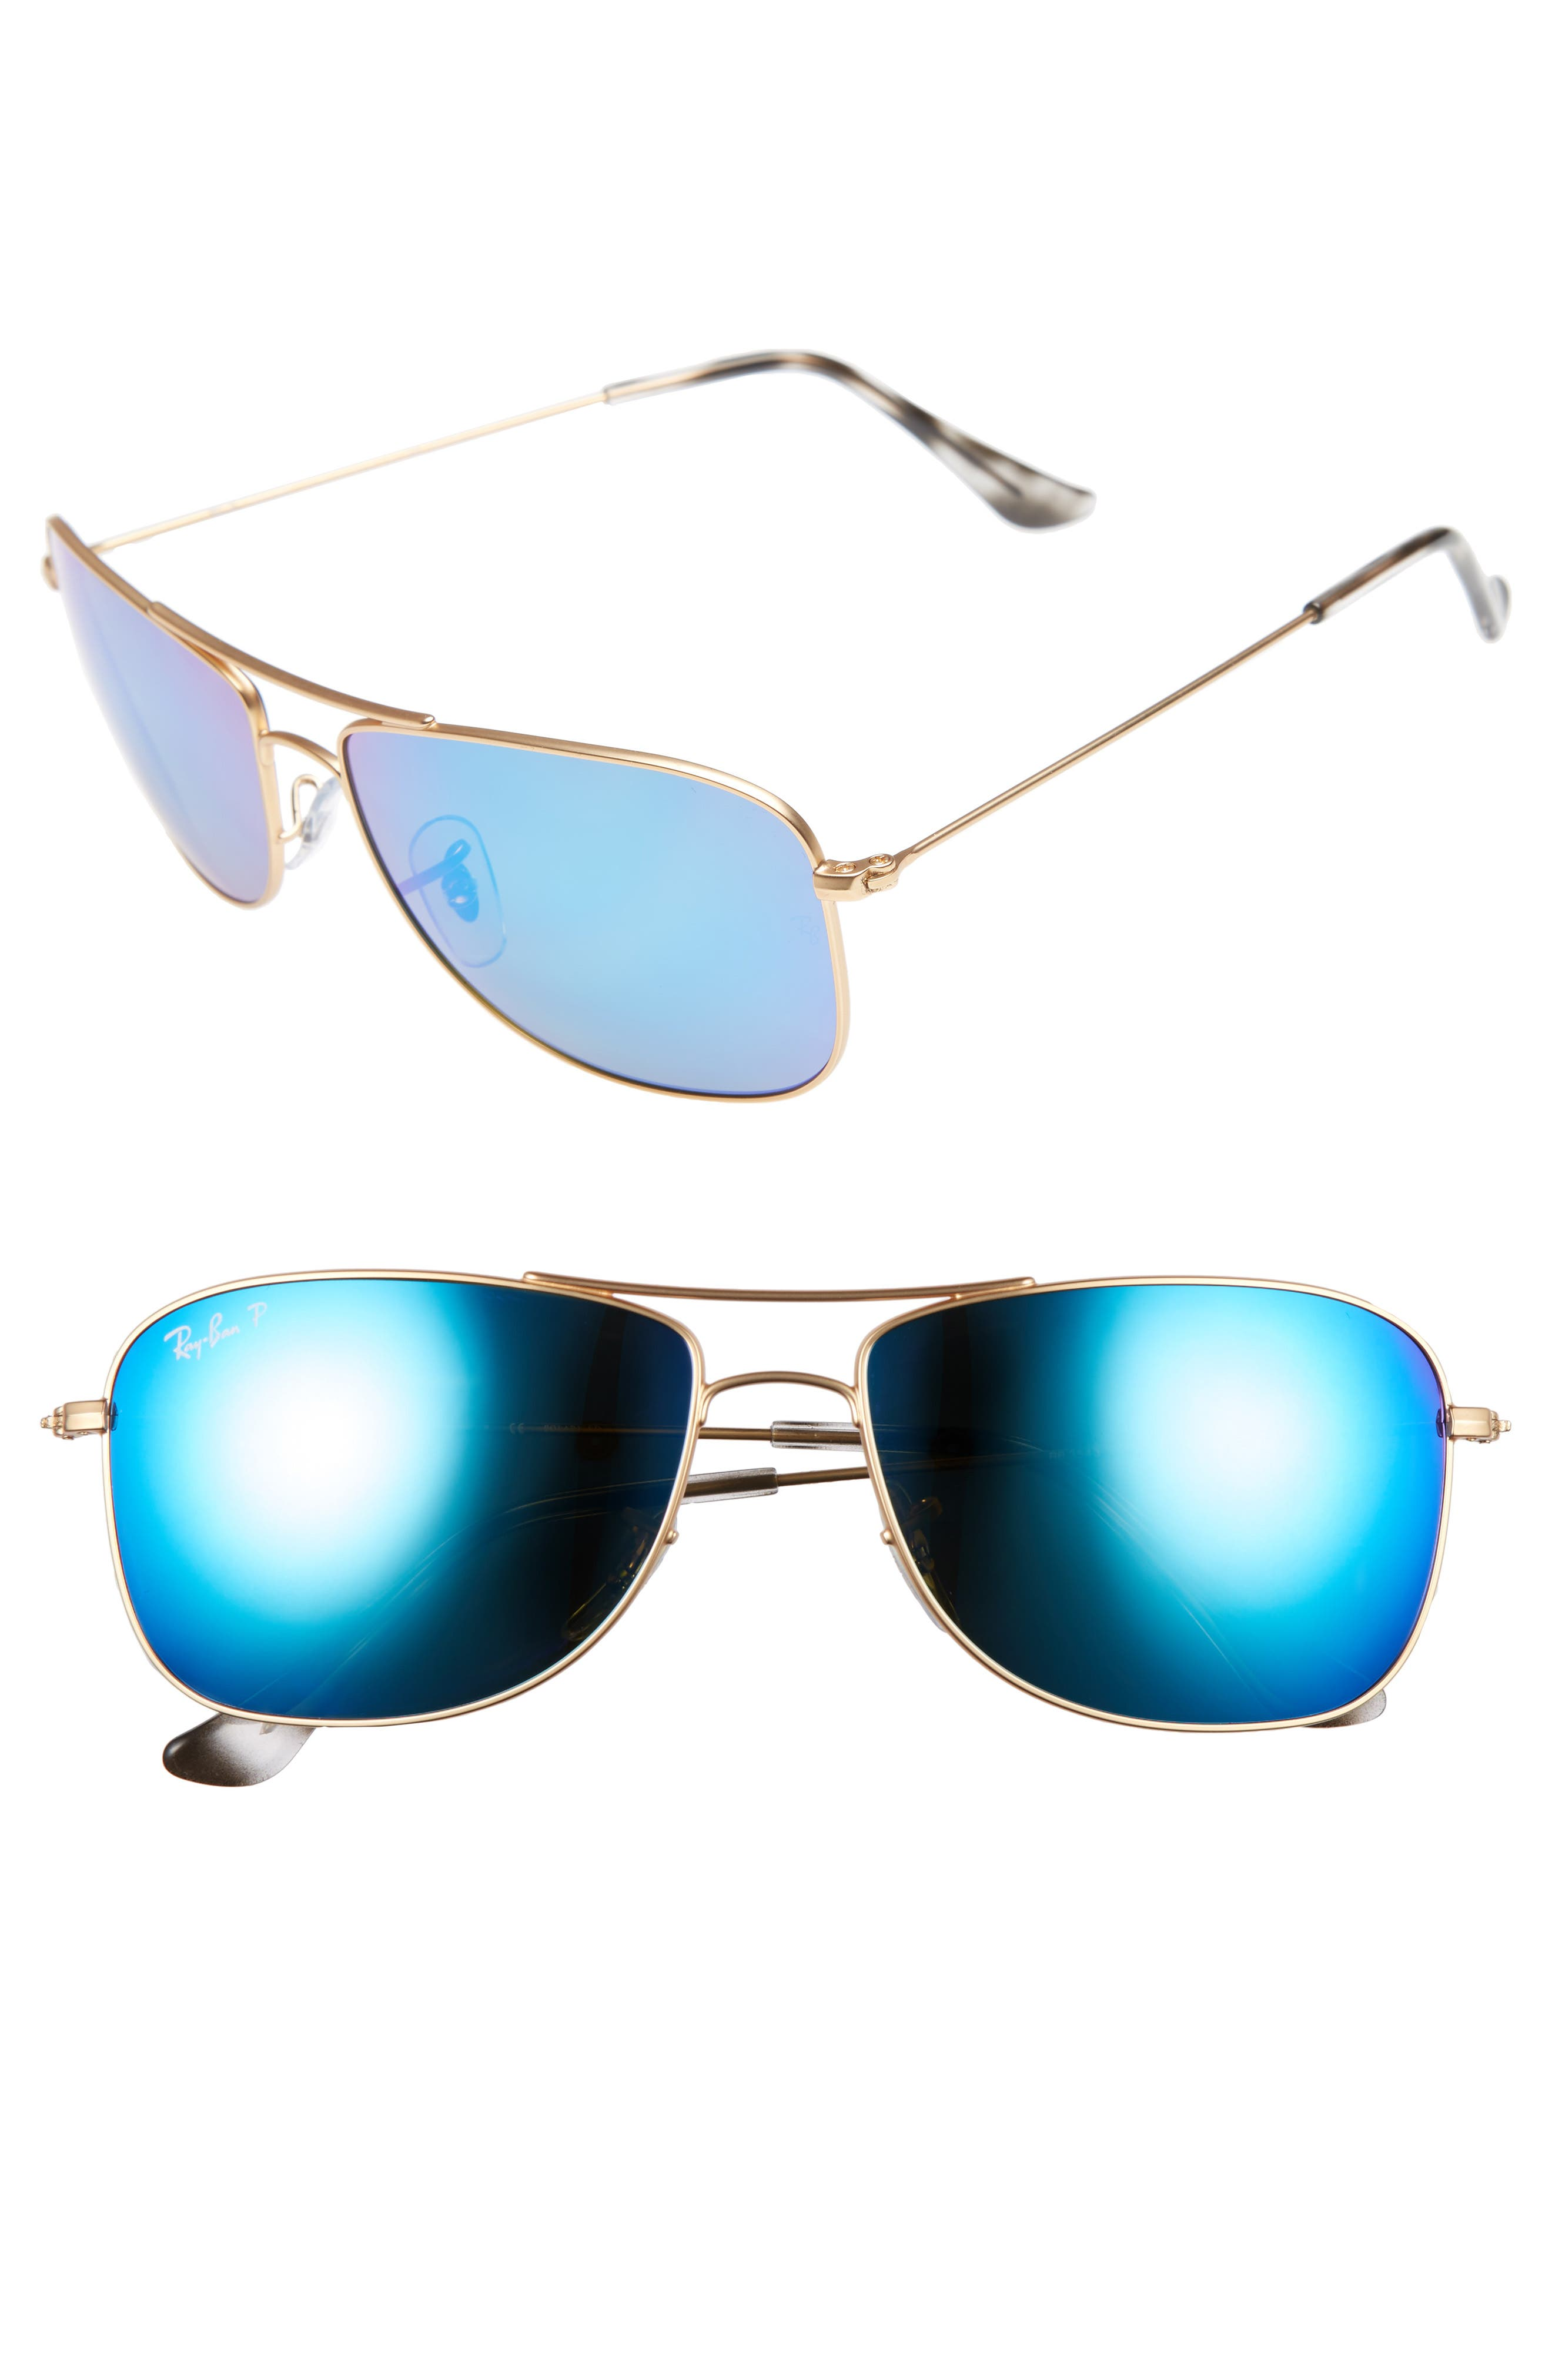 Ray-Ban 59mm Polarized Aviator Sunglasses